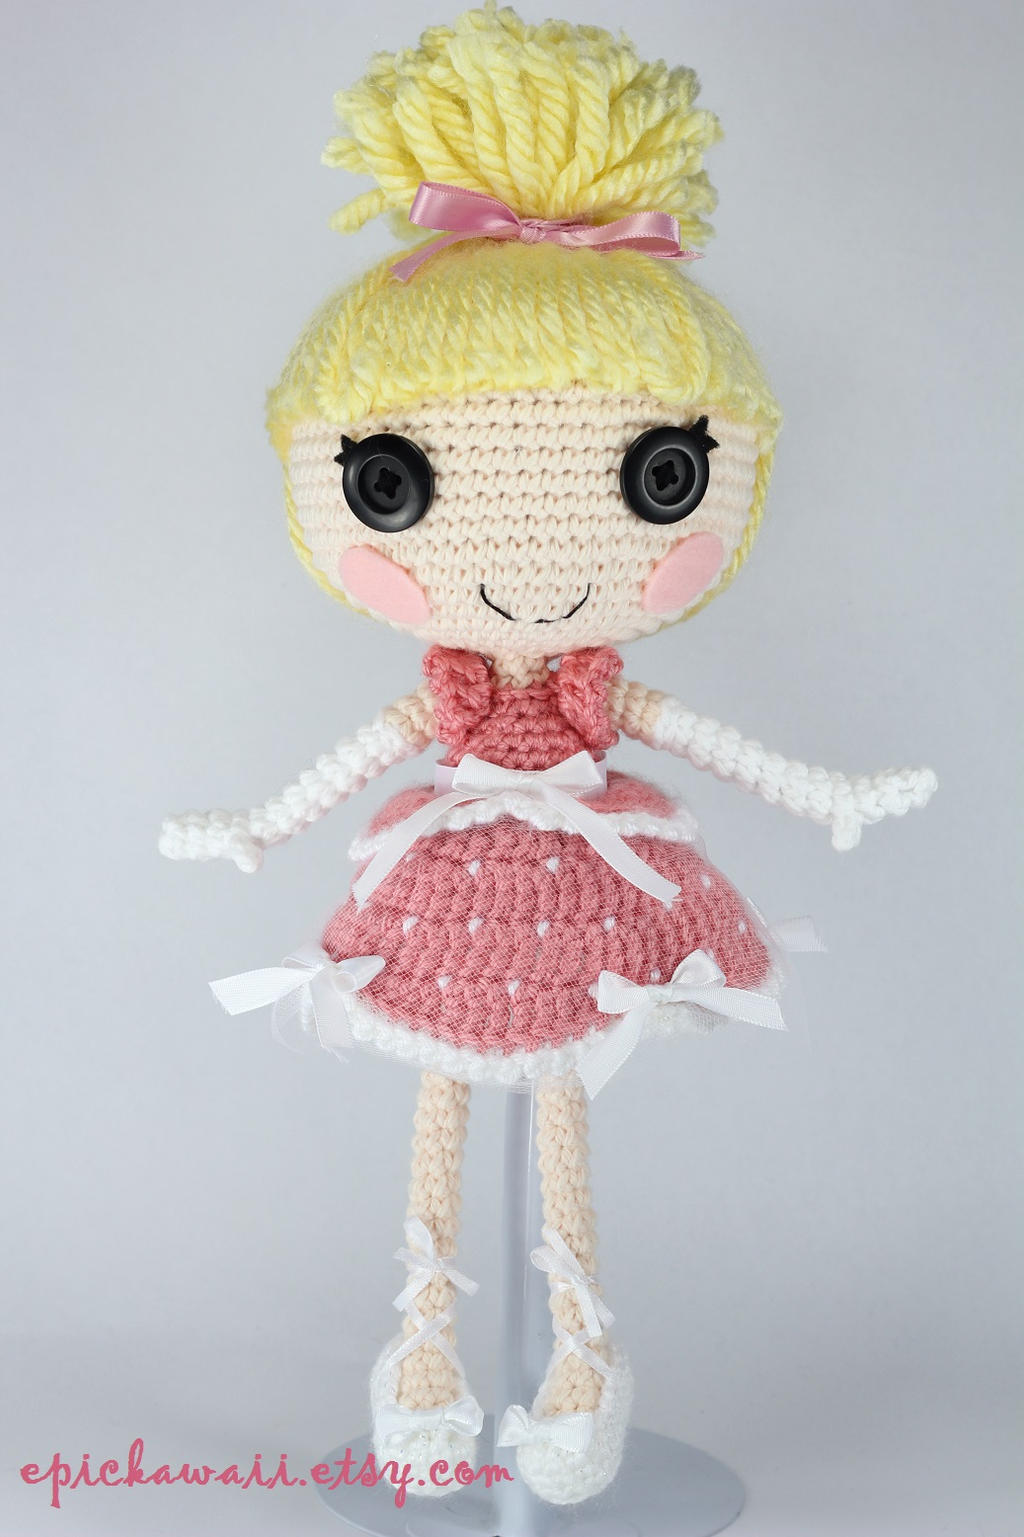 Amigurumi Doll How To : Lalaloopsy cinder slippers crochet amigurumi doll by